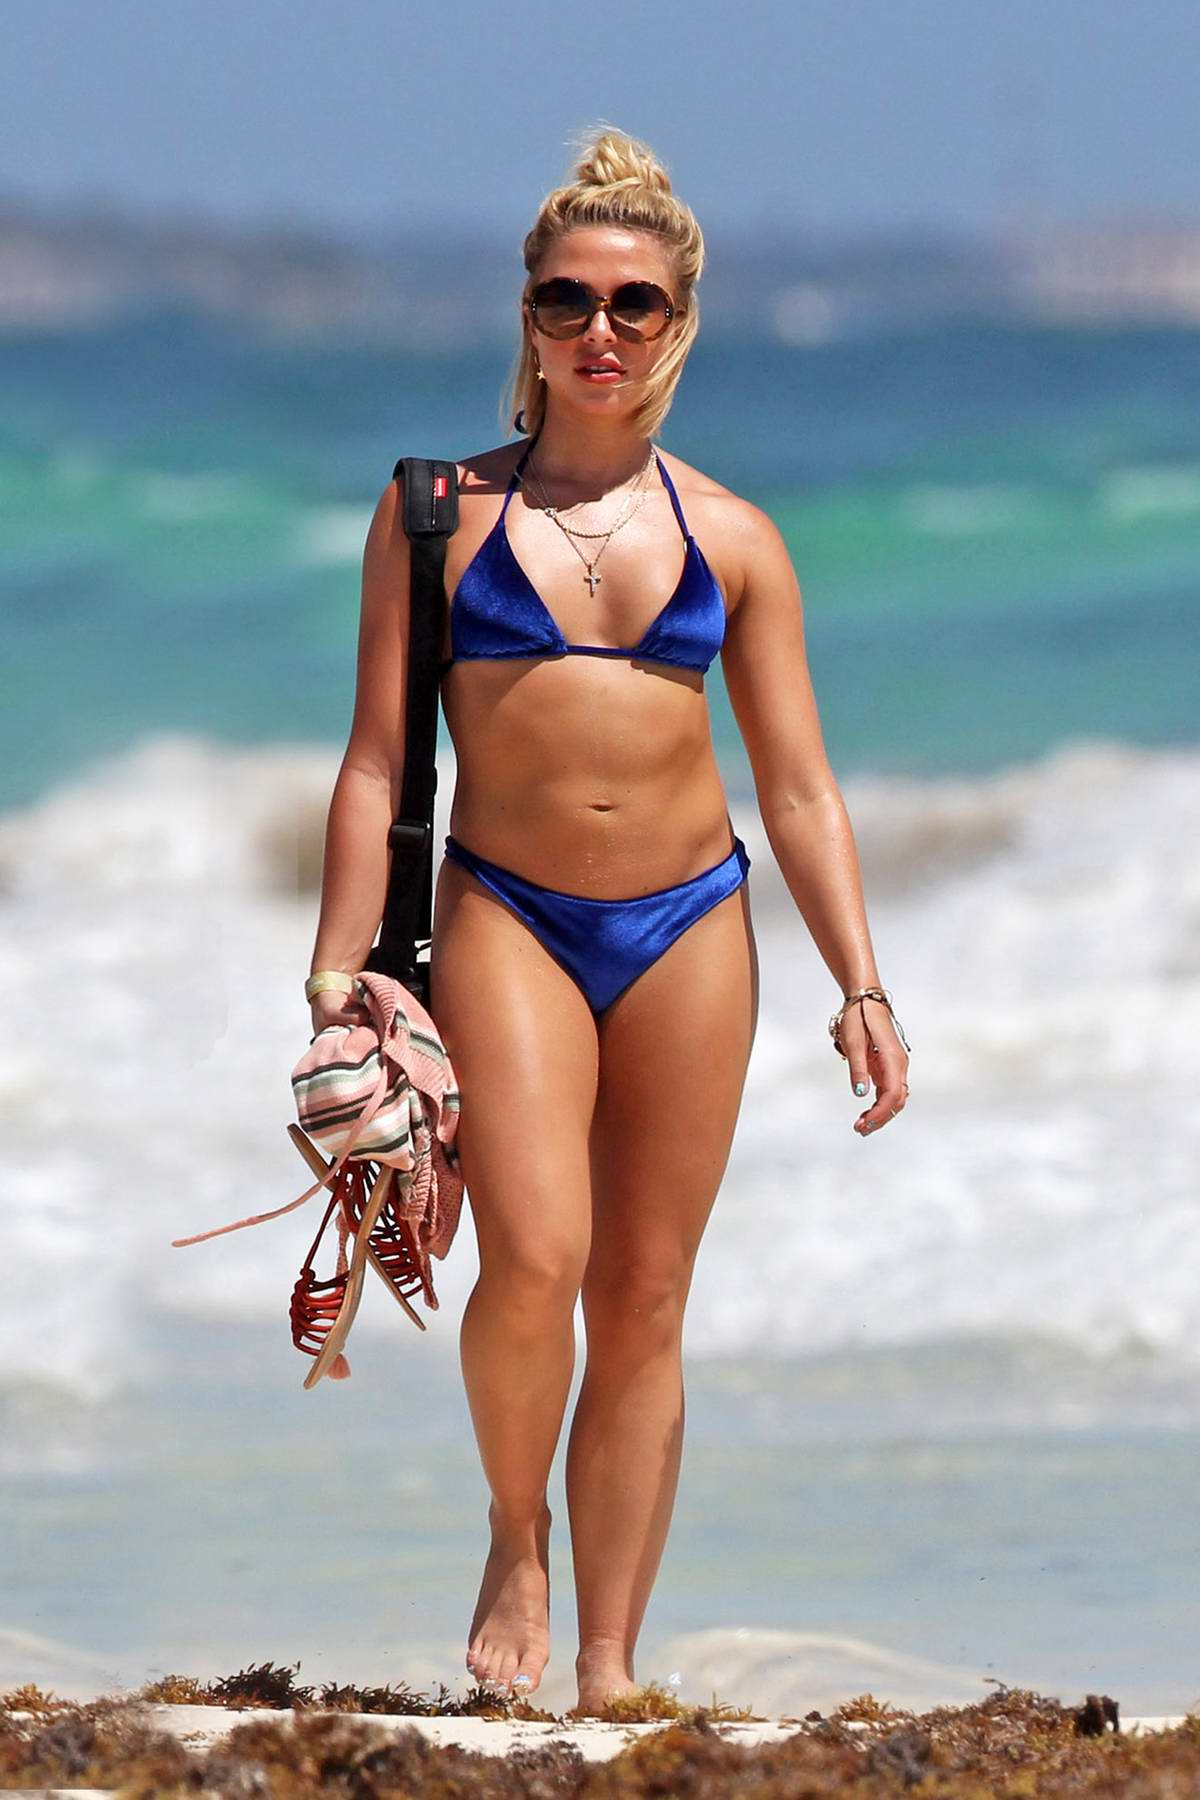 Gabby Allen soaks up the sun in a blue bikini while enjoying a beach day with friends in Tulum, Mexico